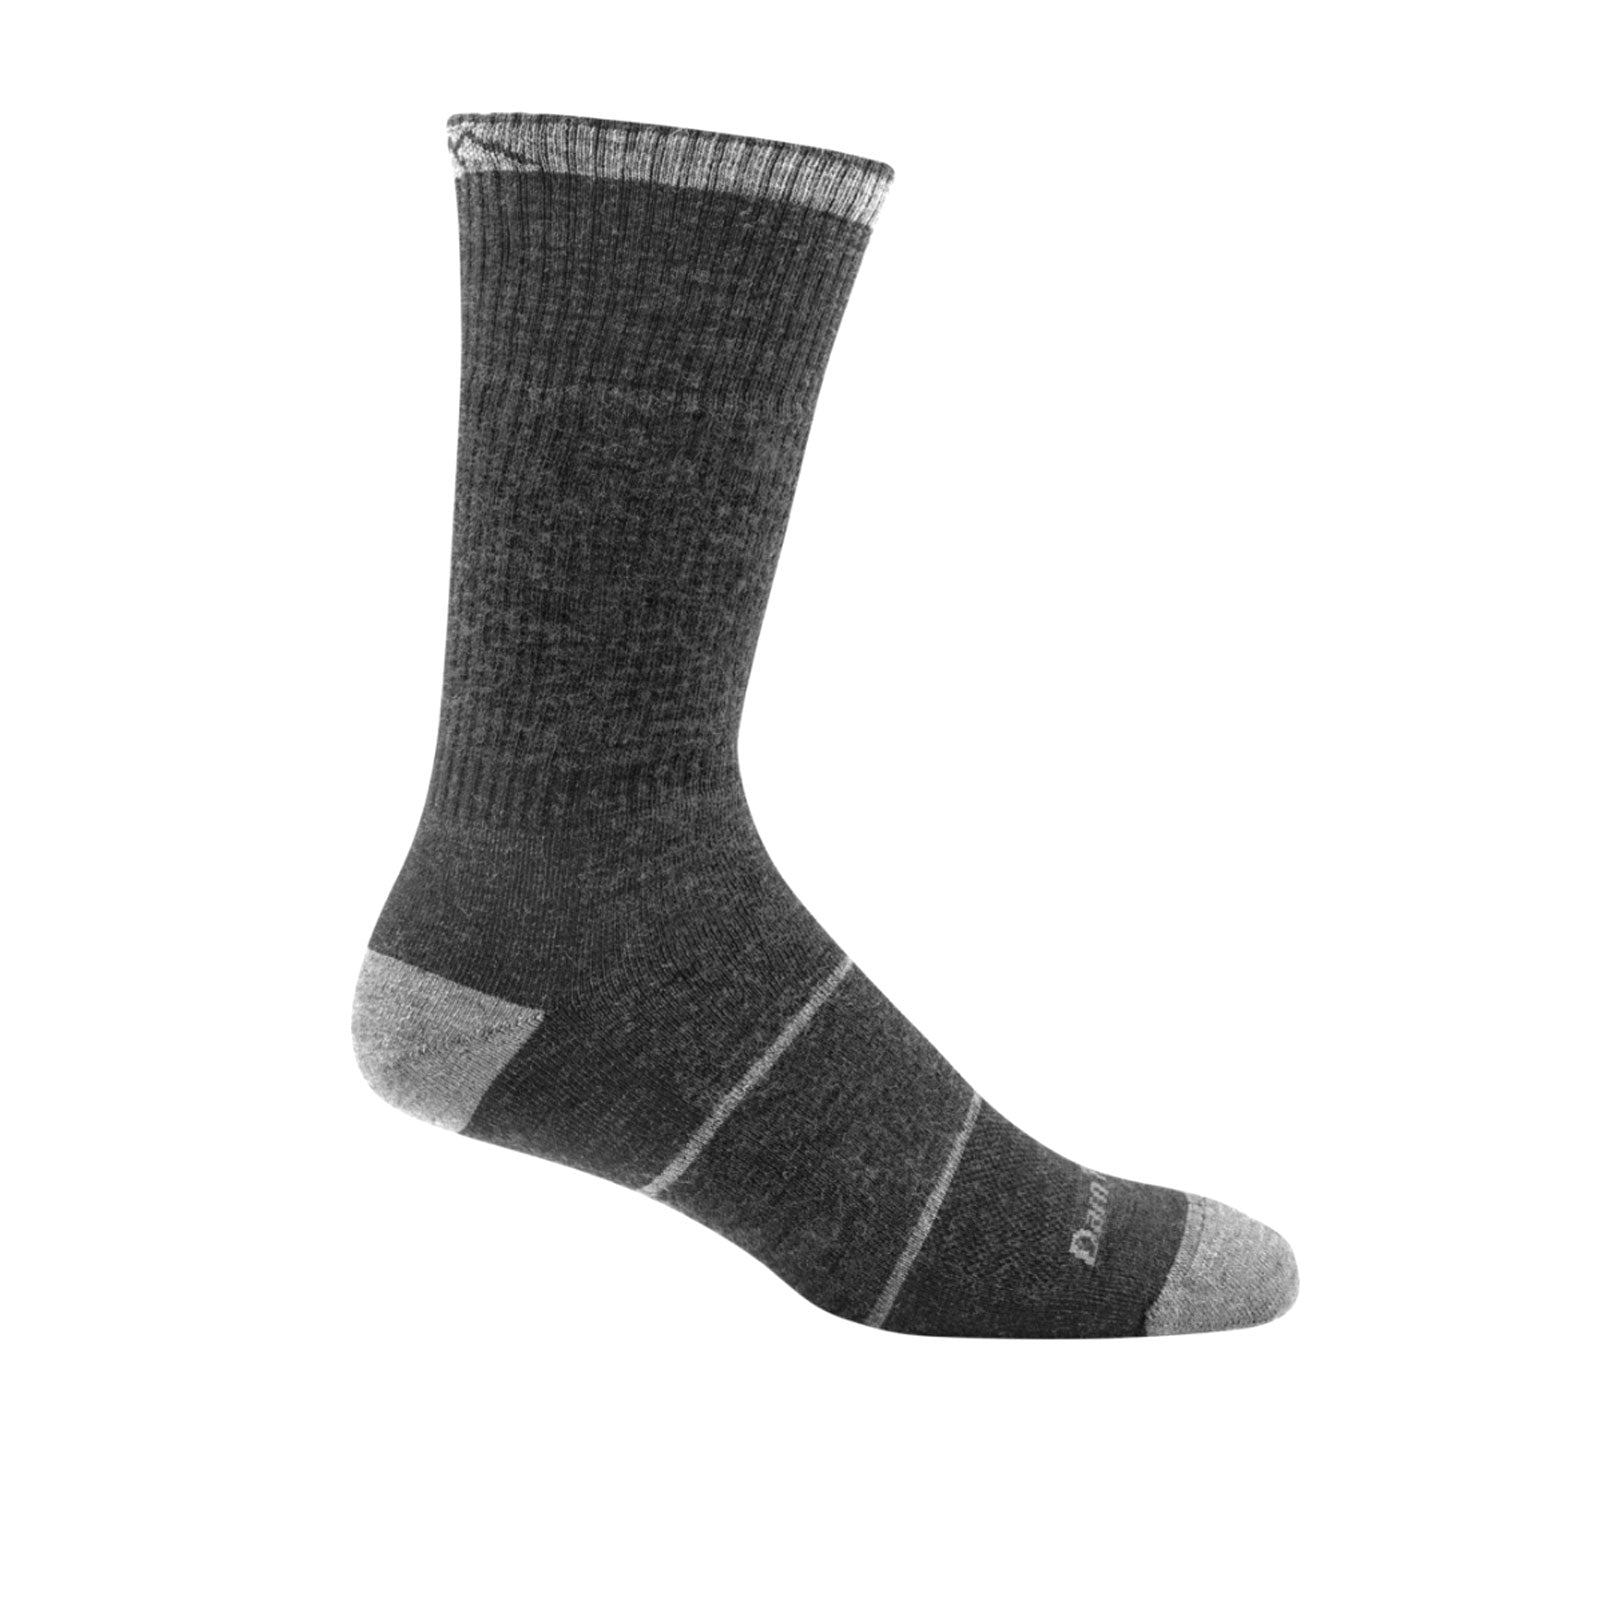 Darn Tough William Jarvis Boot Midweight Cushion (Men) - Gravel Socks - Life - Crew - The Heel Shoe Fitters